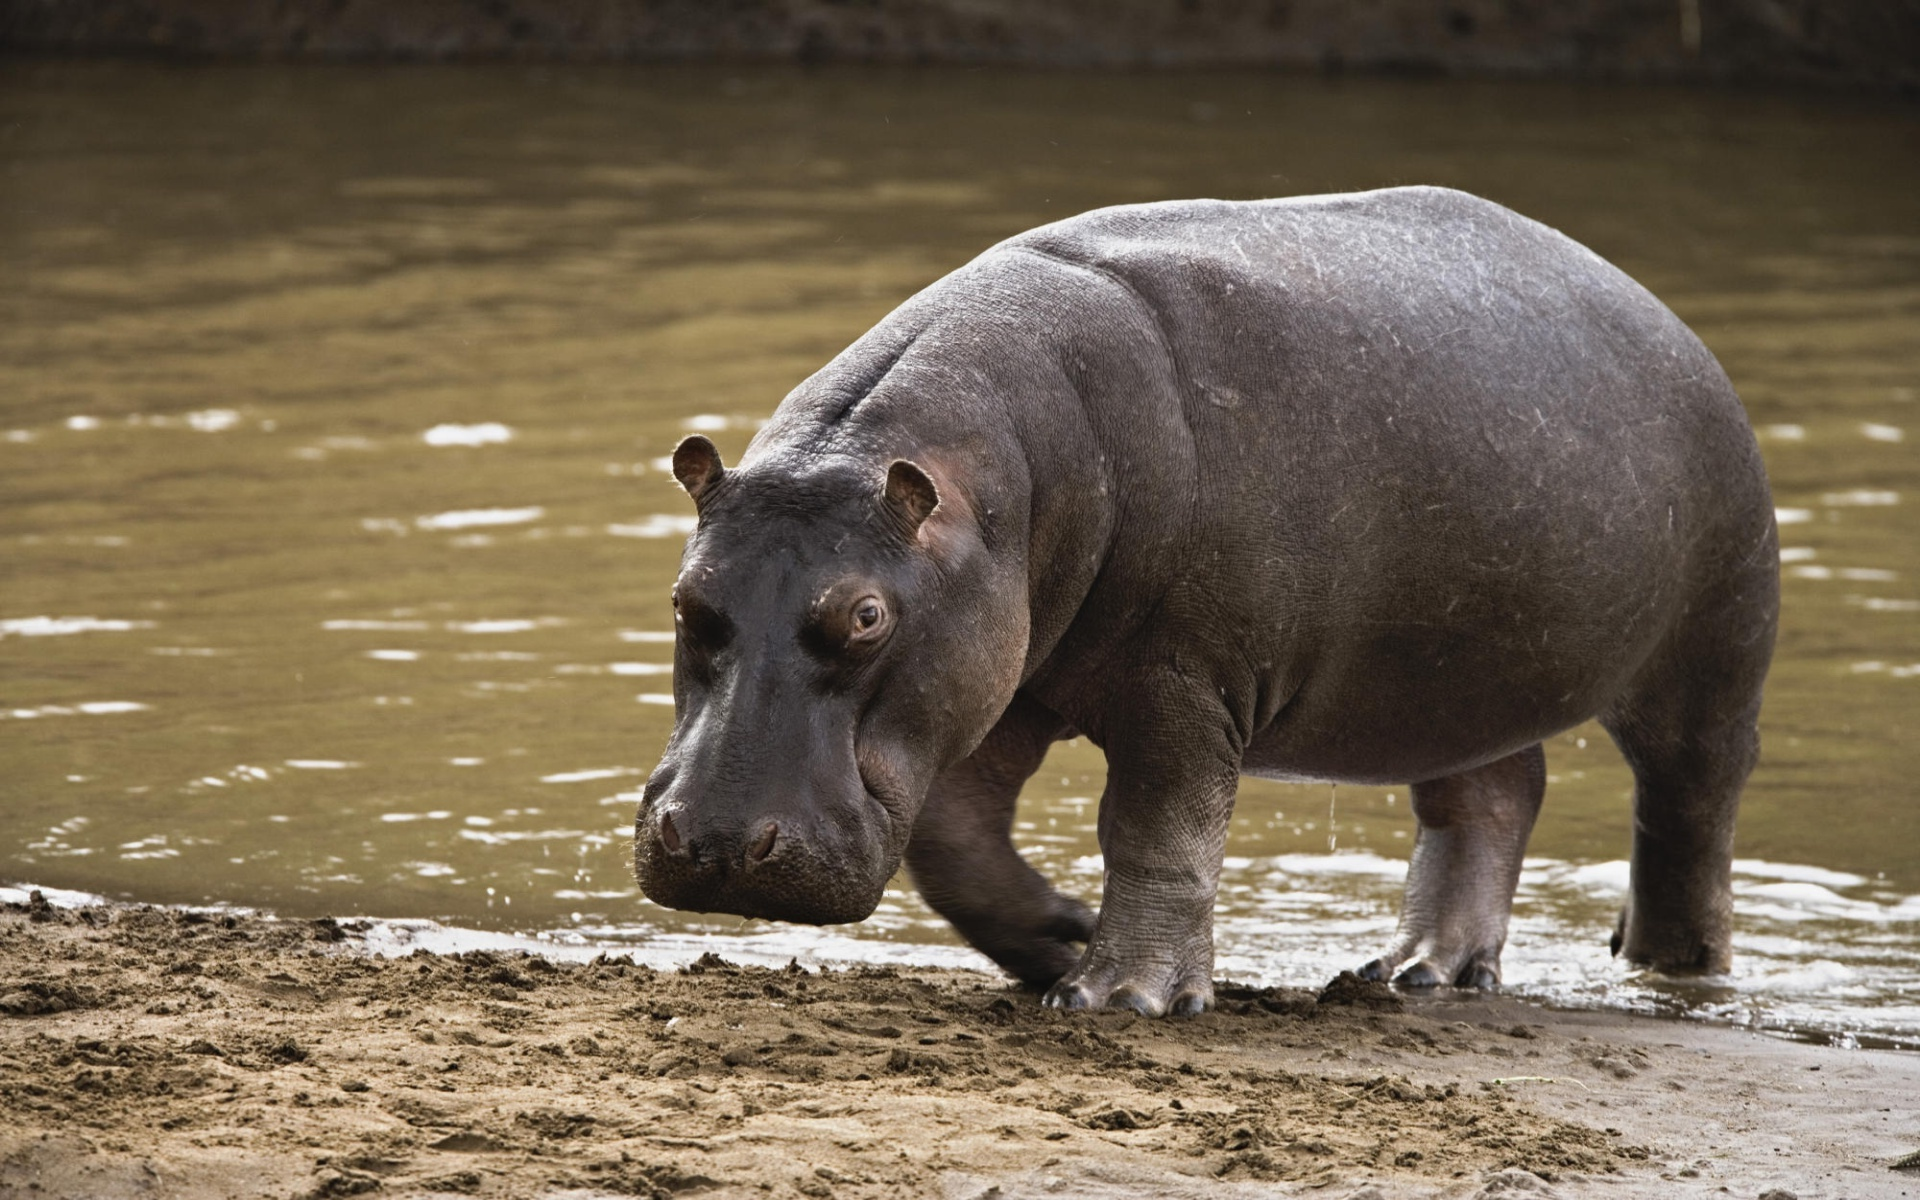 Hippopotamus After a Swim in the Water 858.06 Kb